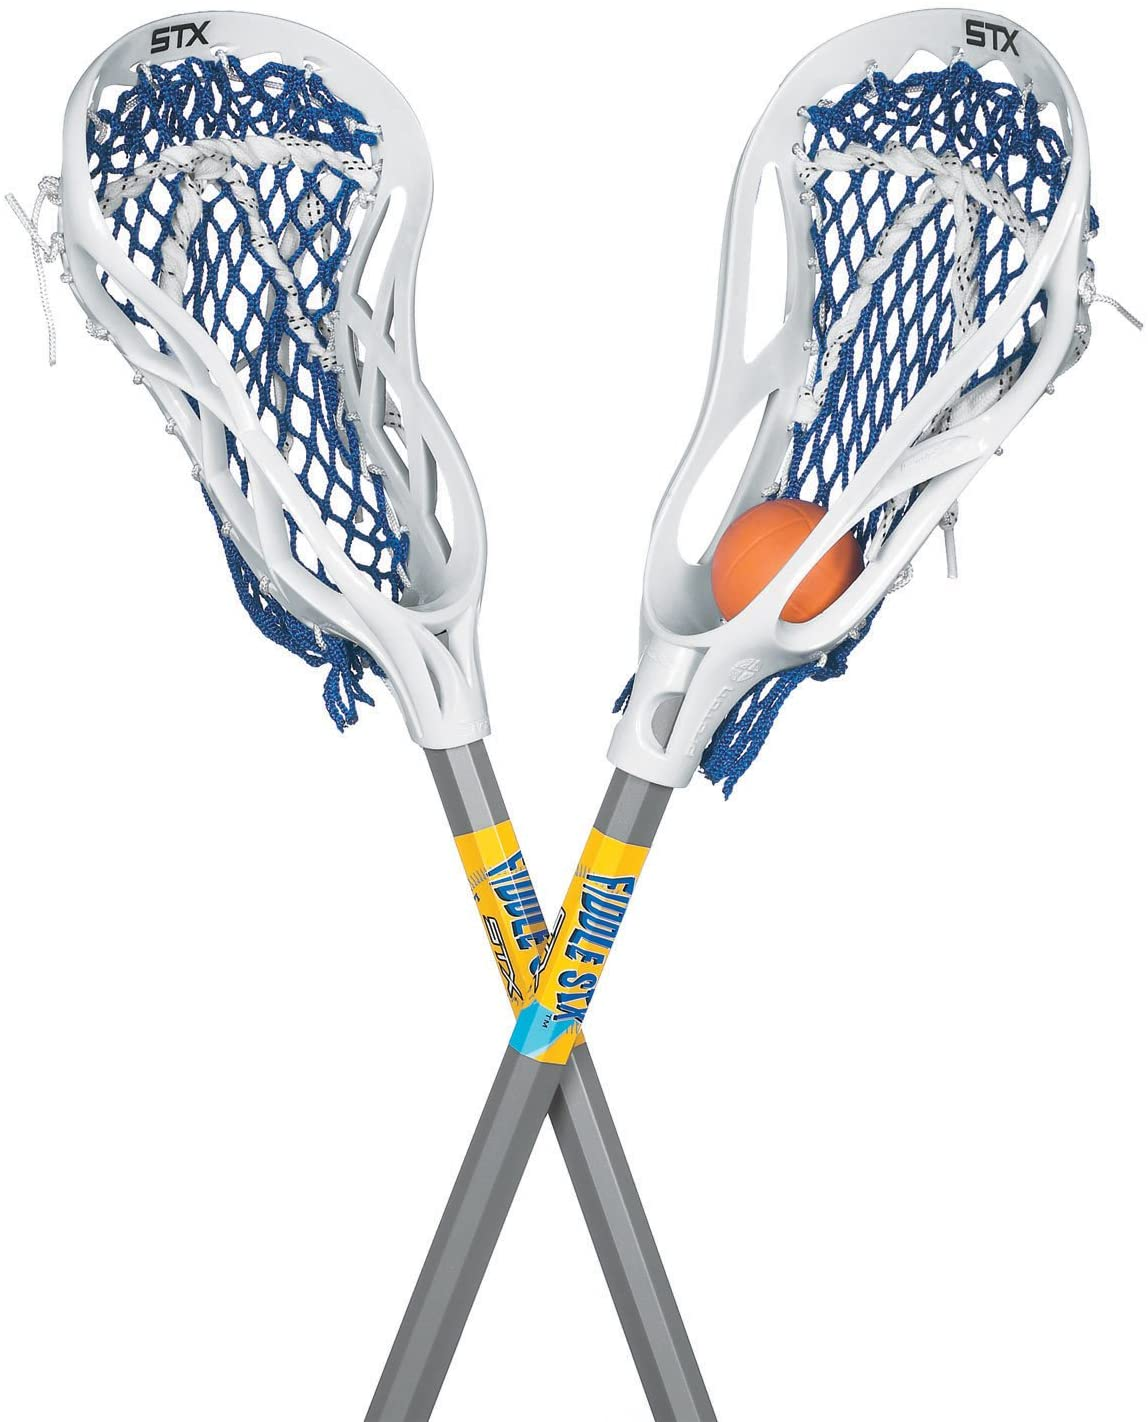 STX FiddleSTX Two Pack Mini Super Power with Plastic Handle and One Ball, 30-Inch : Lacrosse Sticks : Sports & Outdoors